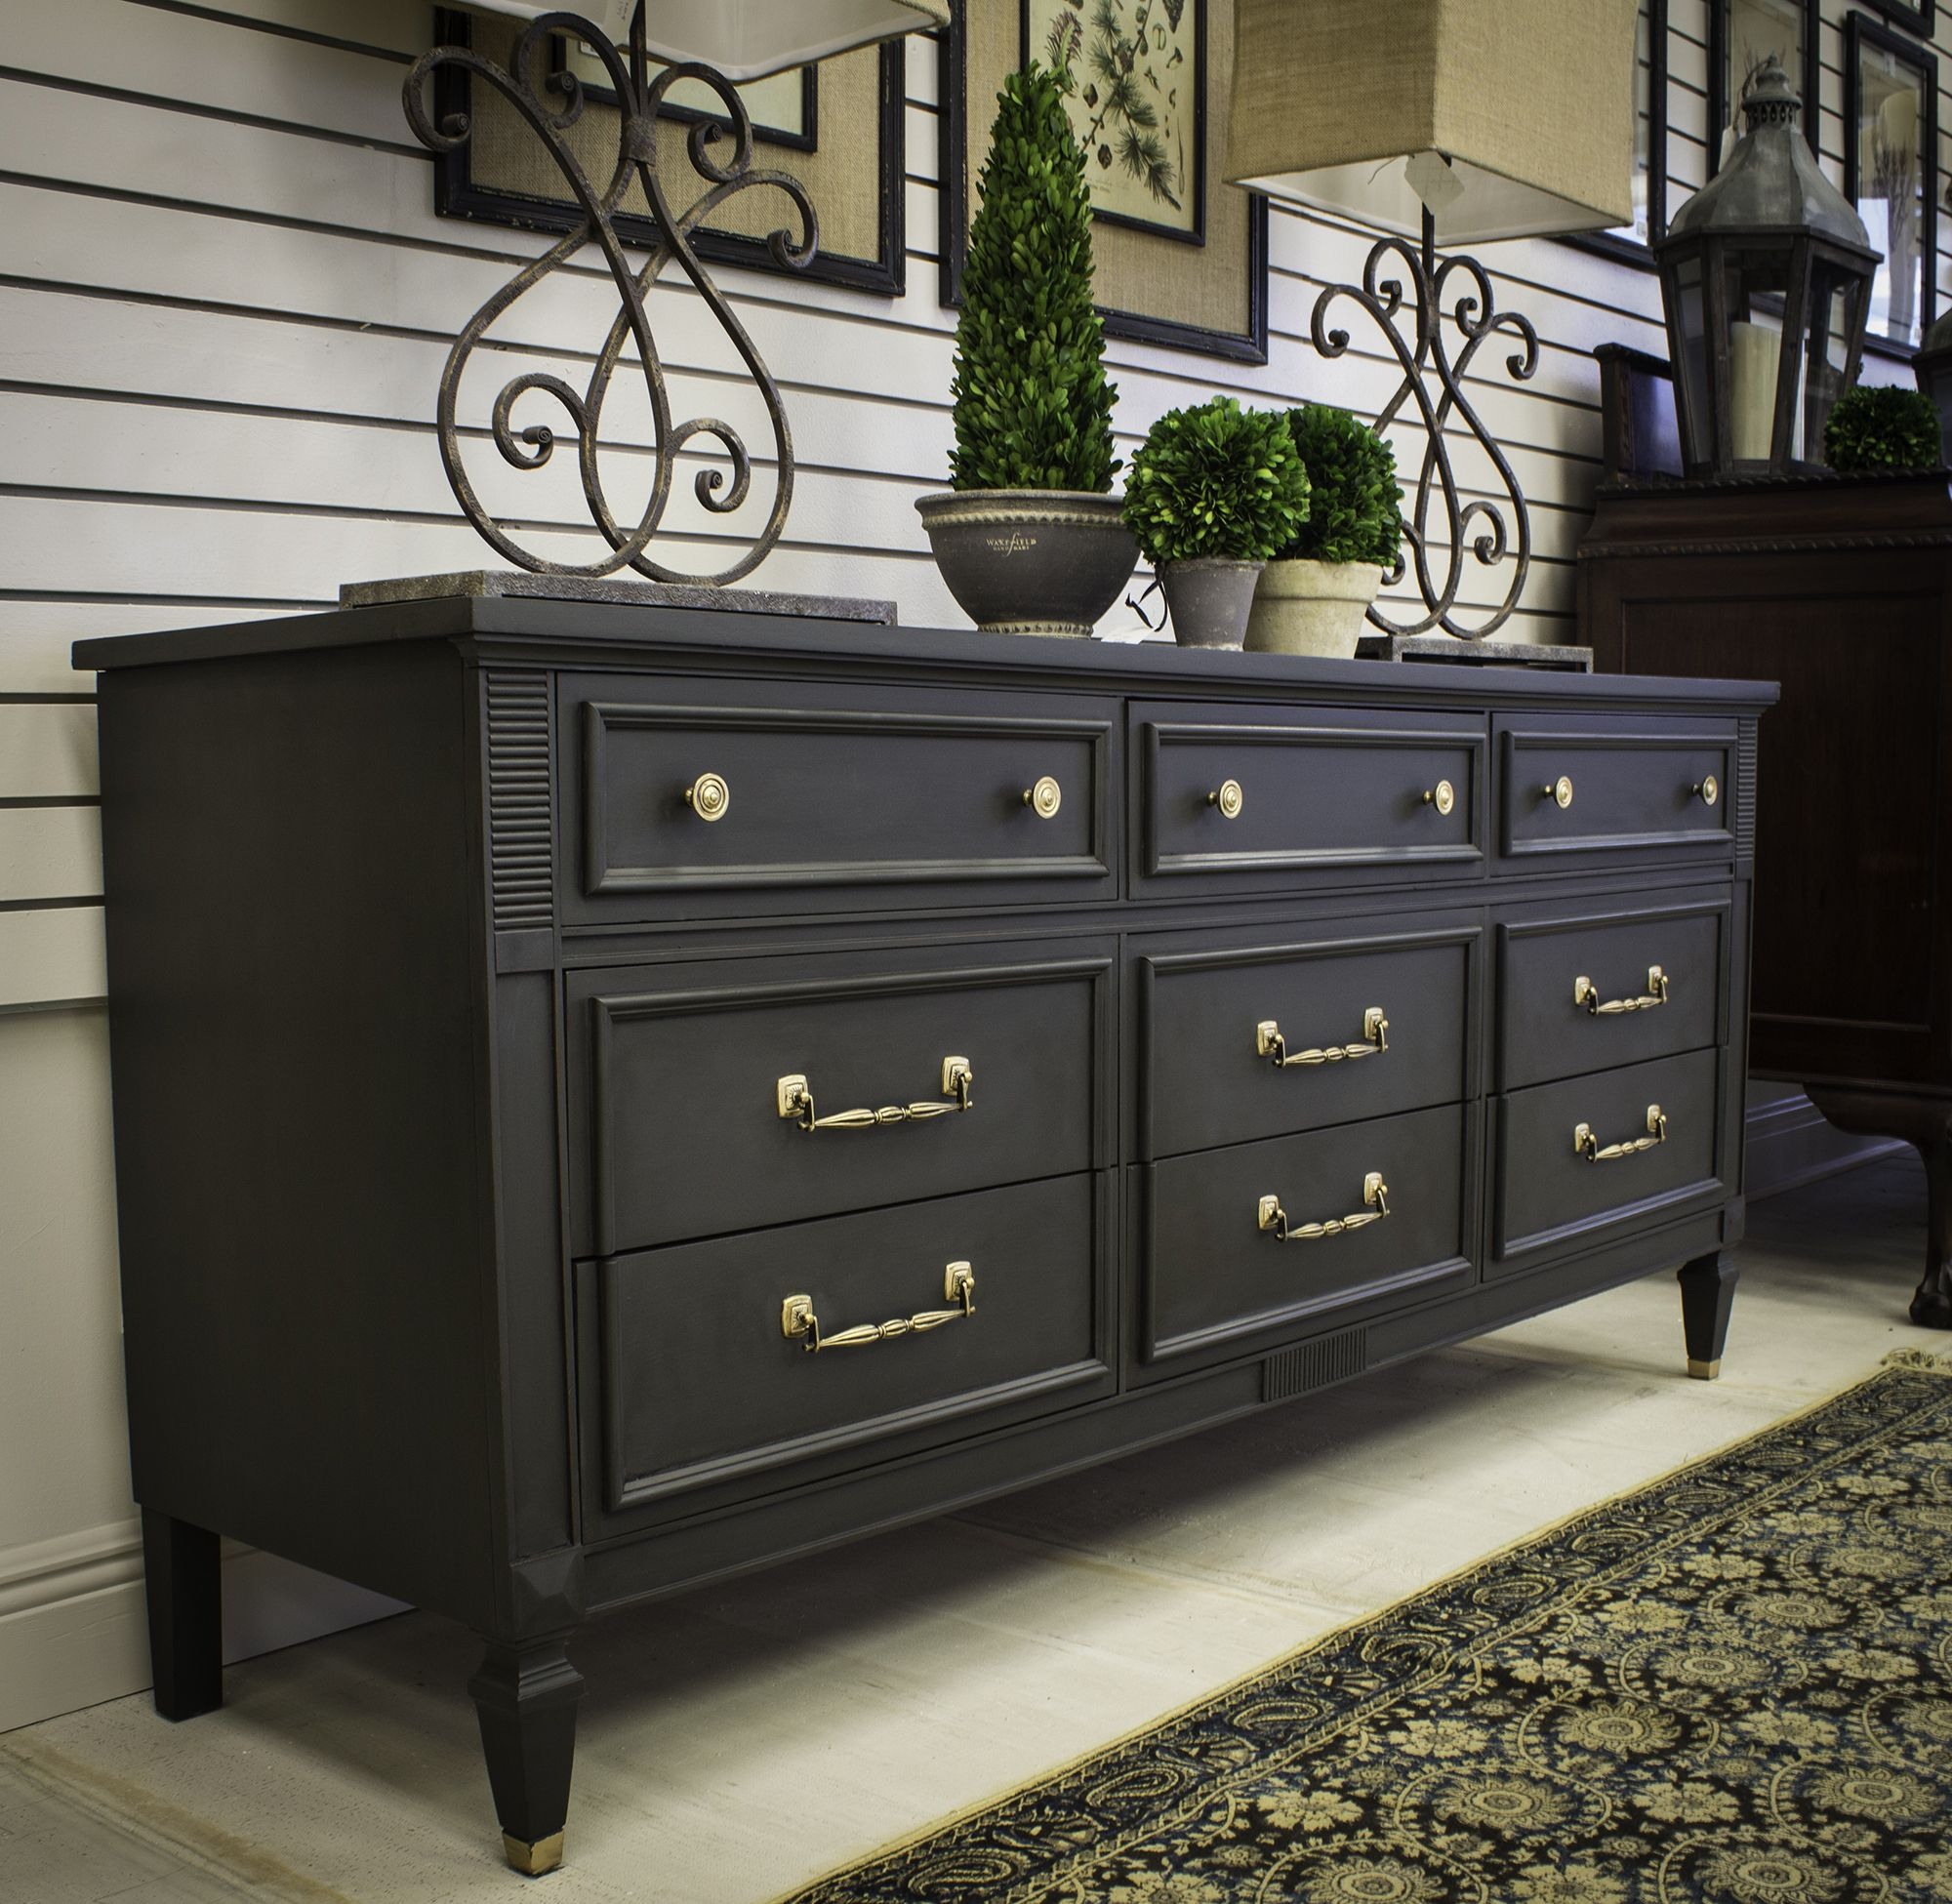 Gorgeous Dresser With Graphite Chalk Paint Project By Portilla